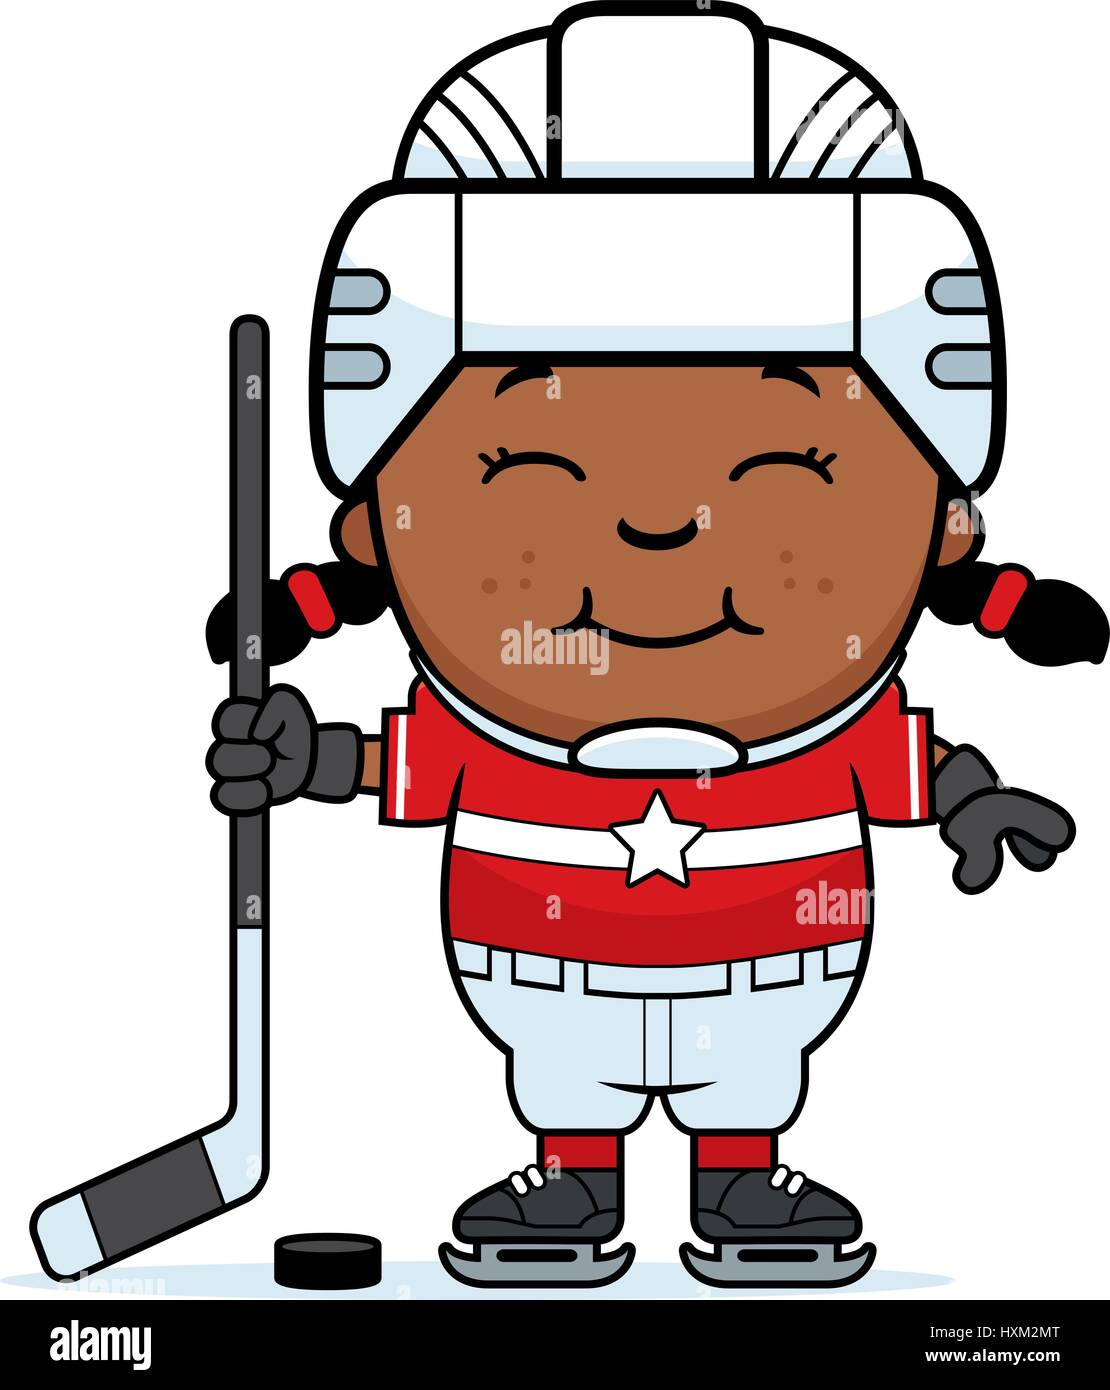 A Cartoon Illustration Of A Child Hockey Player Smiling Stock Vector Image Art Alamy